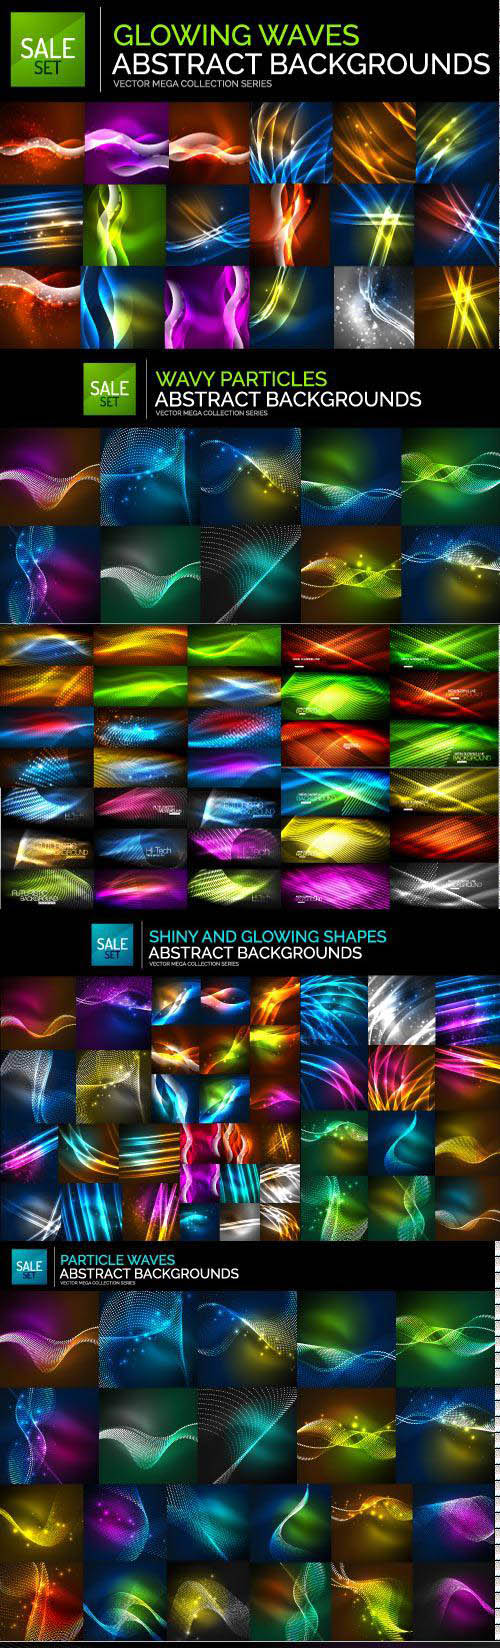 Mega collection of neon glowing waves